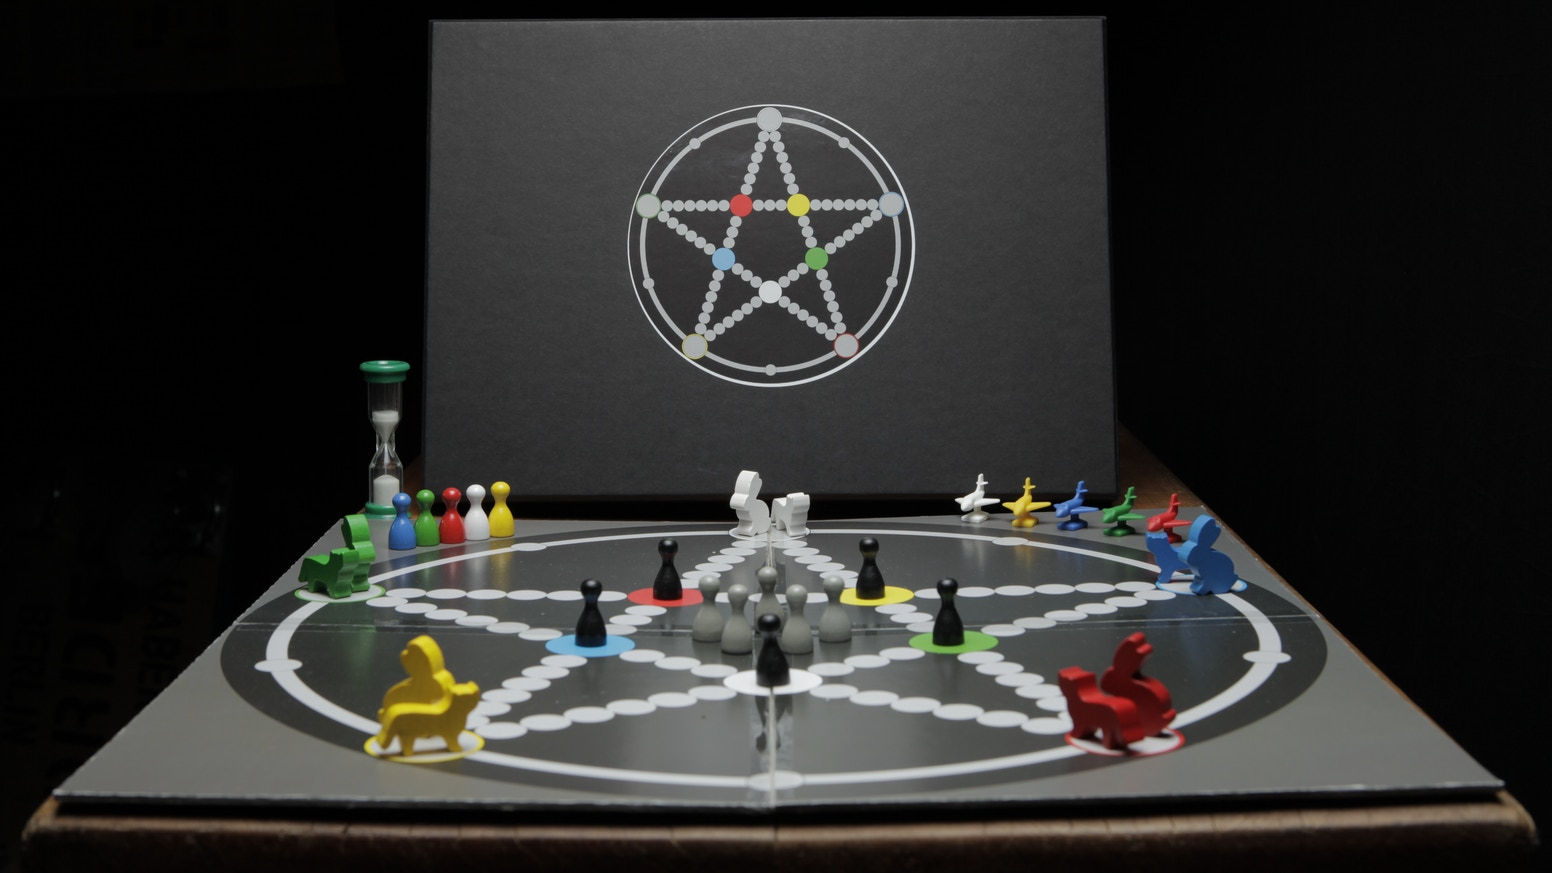 More a discovery than an invention: The diceless game played on the pentagram star.